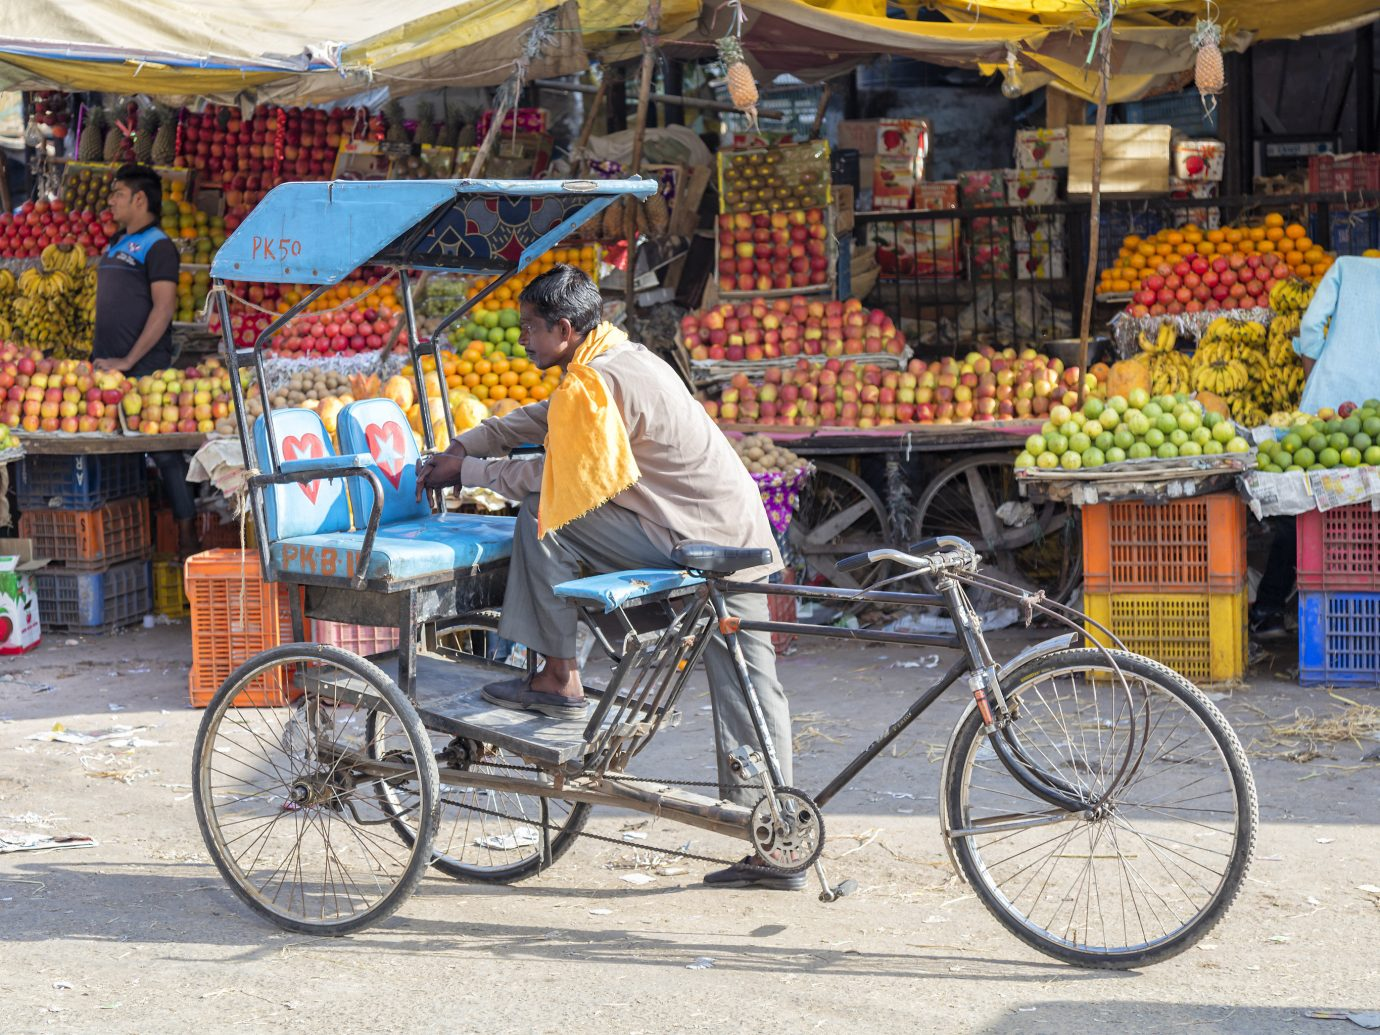 India Jaipur Jodhpur Trip Ideas bicycle outdoor land vehicle vendor public space marketplace mode of transport vehicle person street bicycle accessory market stall fruit rickshaw cart sports equipment bazaar recreation hawker hybrid bicycle City fresh past busy